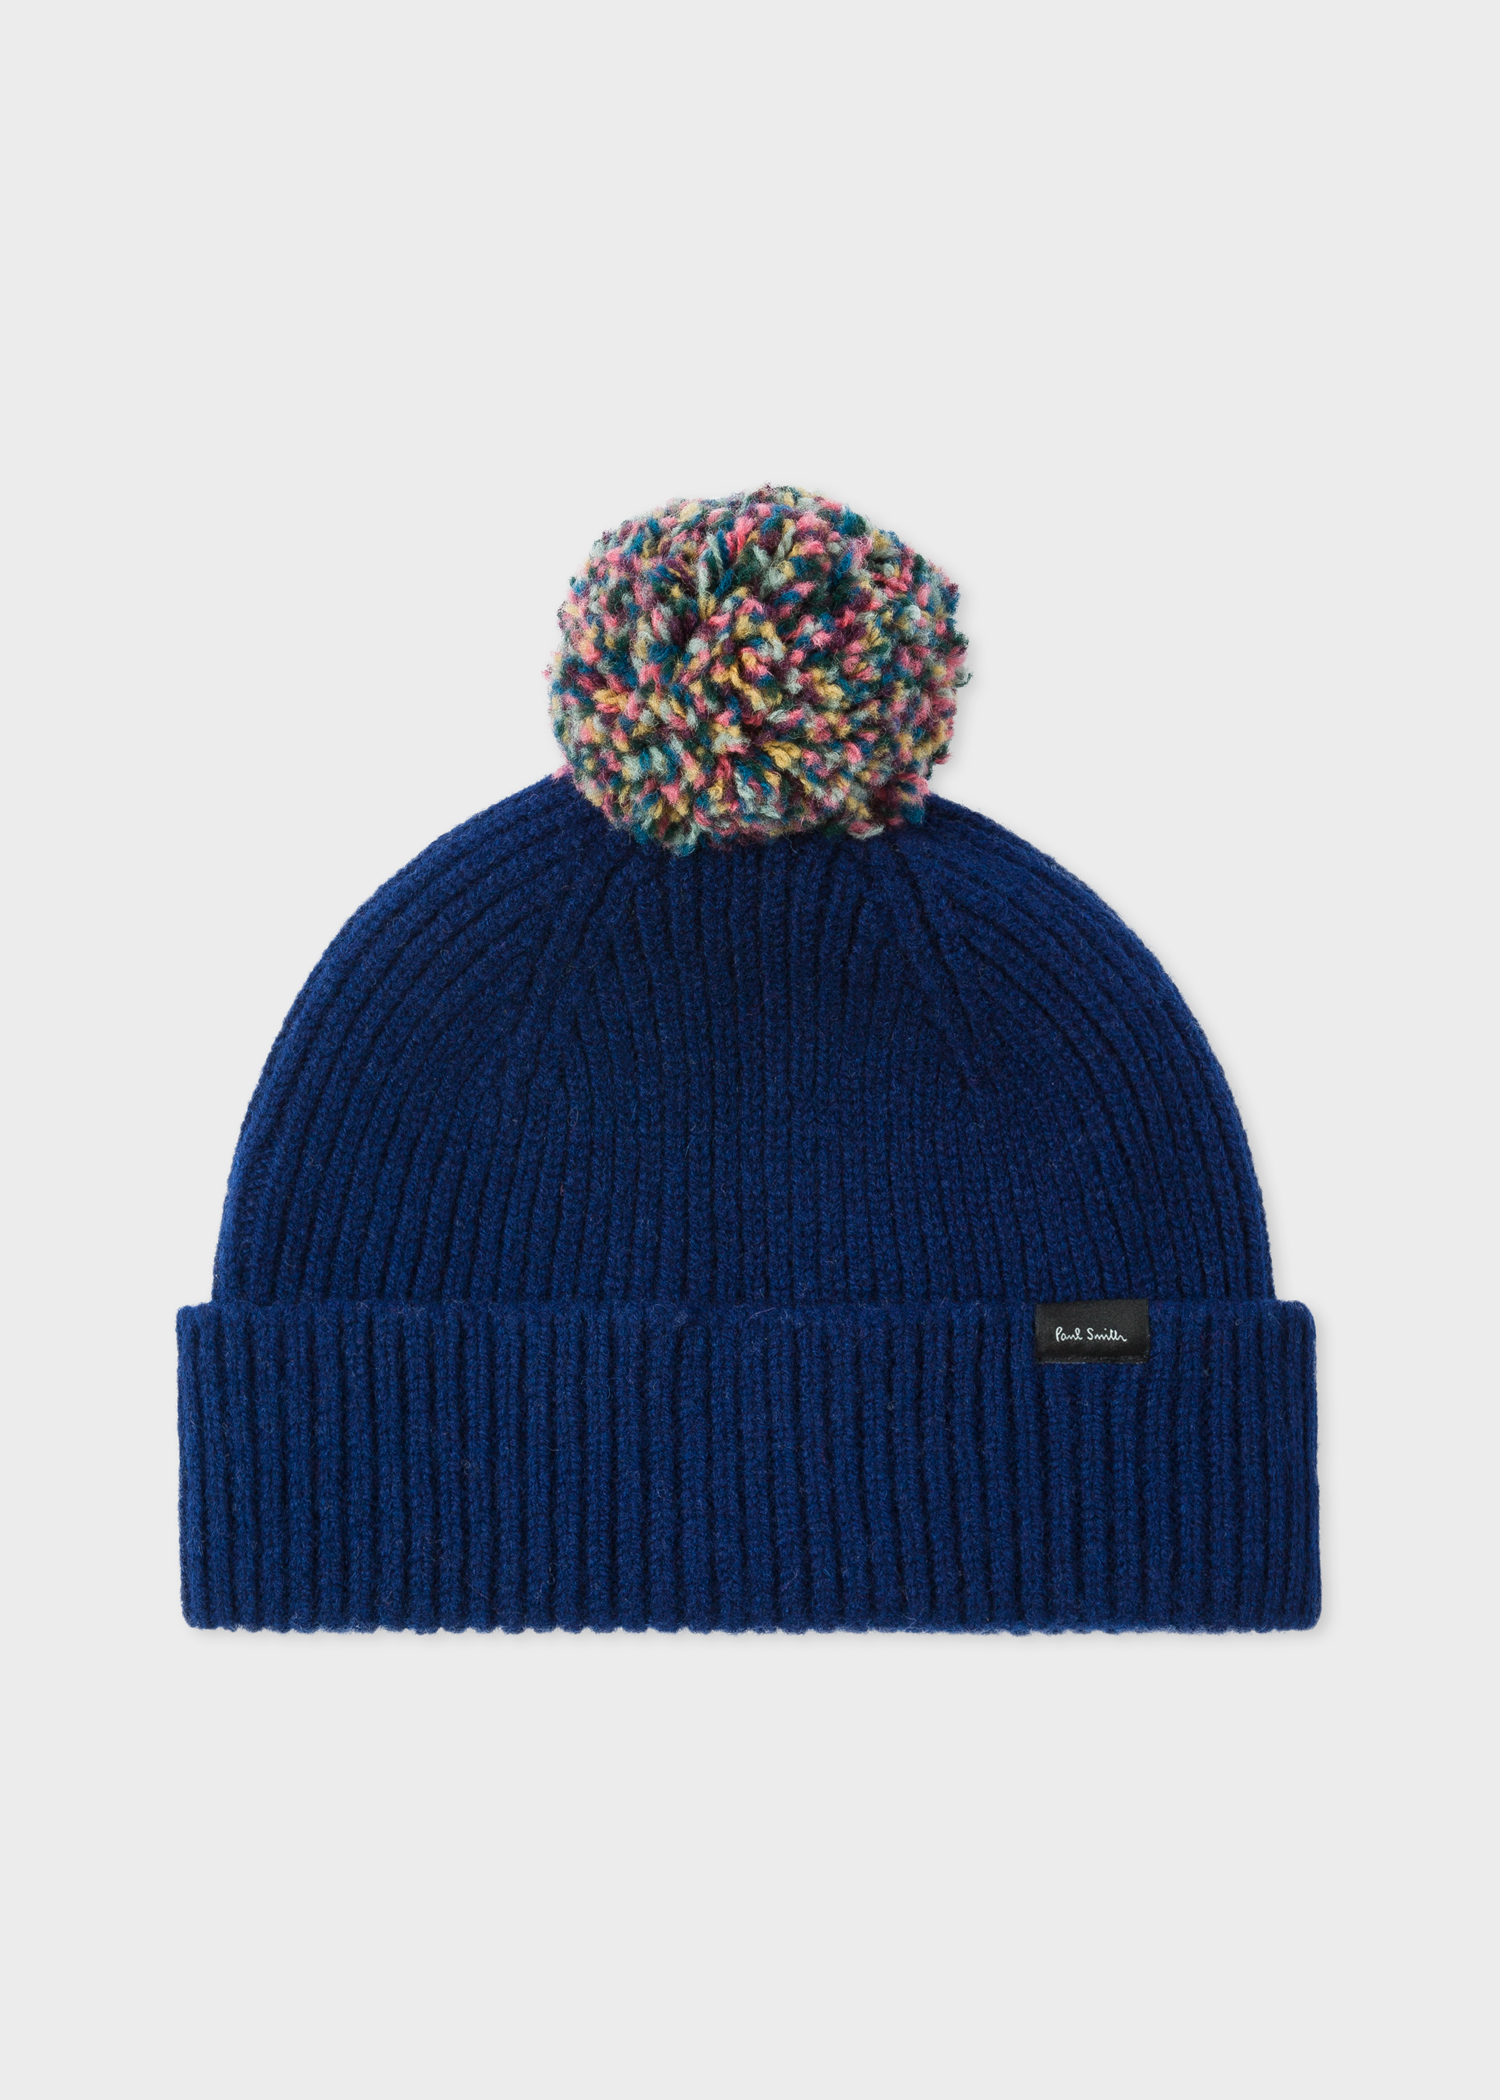 Front View - Men s Navy Pom-Pom Wool Beanie Hat Paul Smith 601935ed4b8